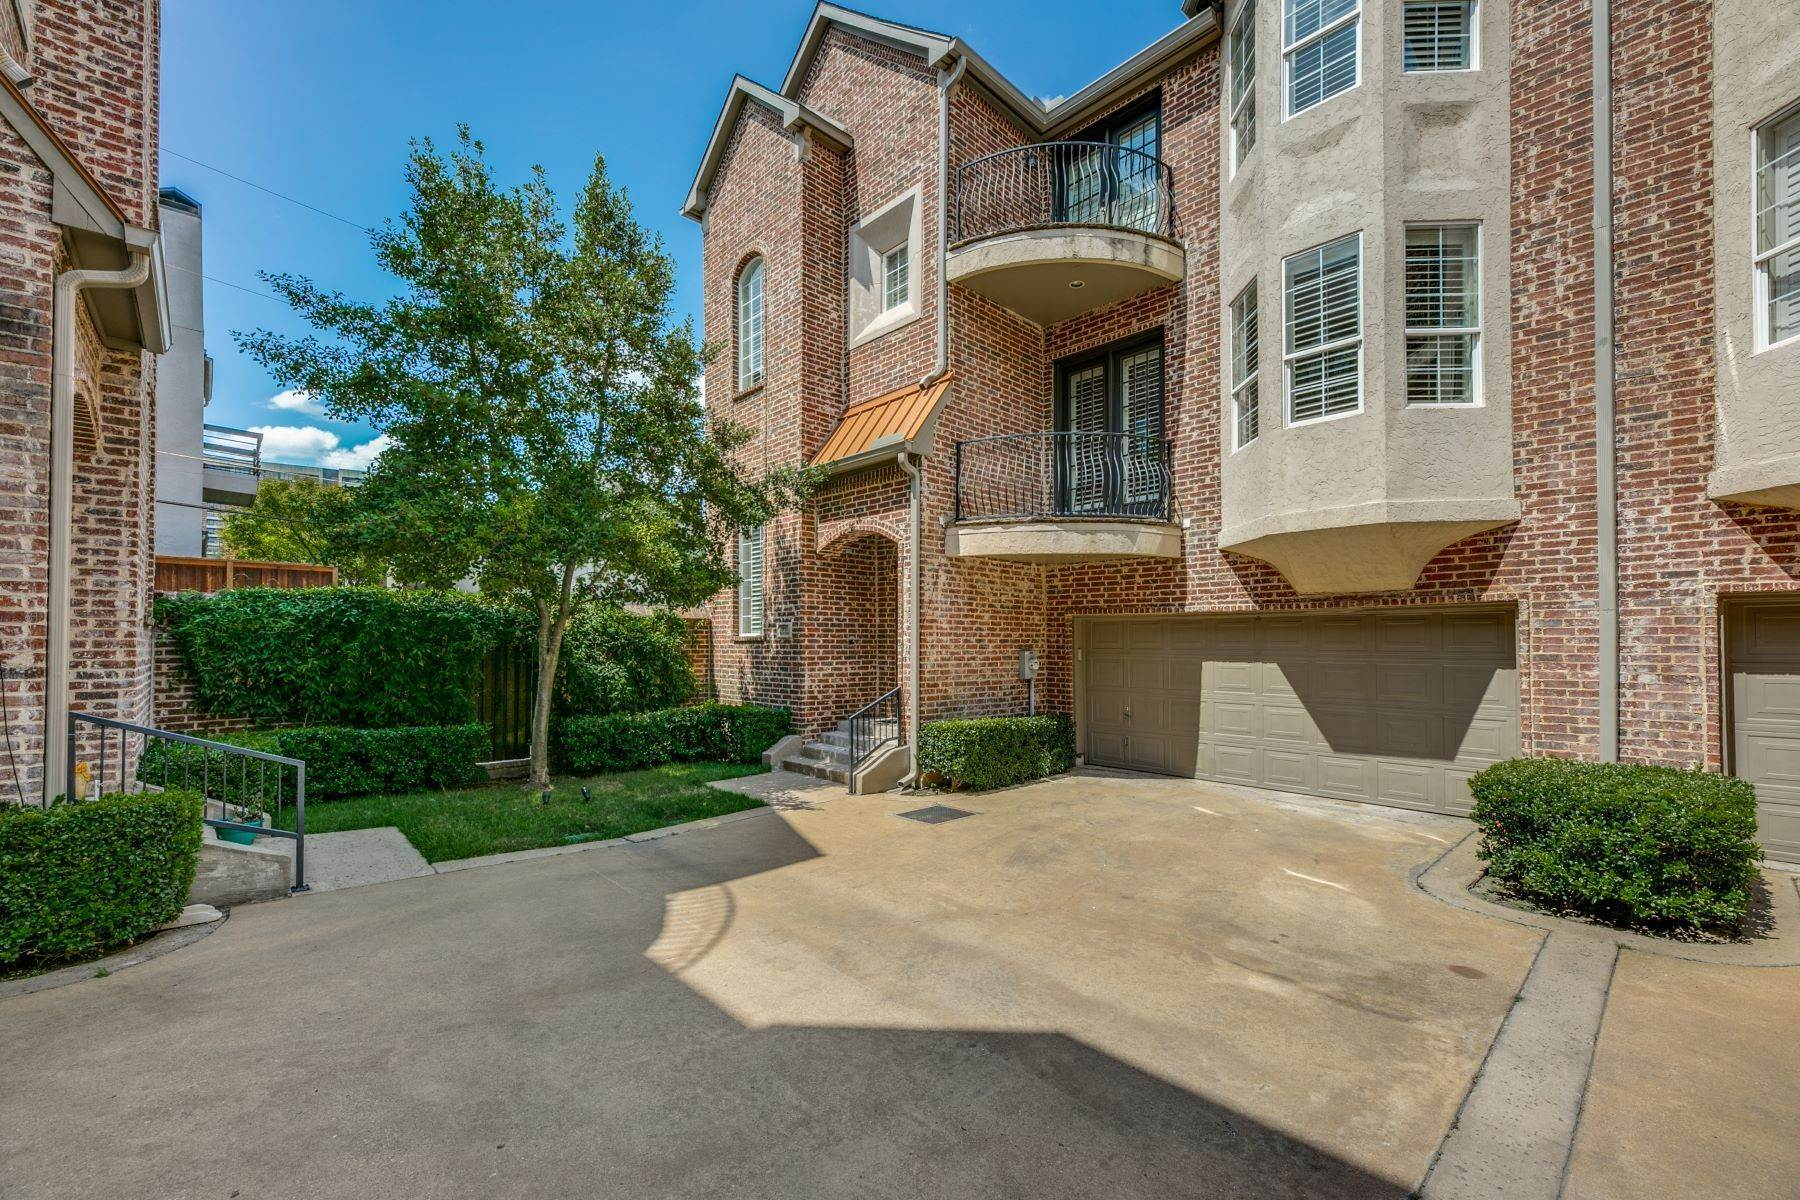 townhouses for Sale at 3951 Travis Street, Dallas, TX, 75204 3951 Travis Street Dallas, Texas 75204 United States